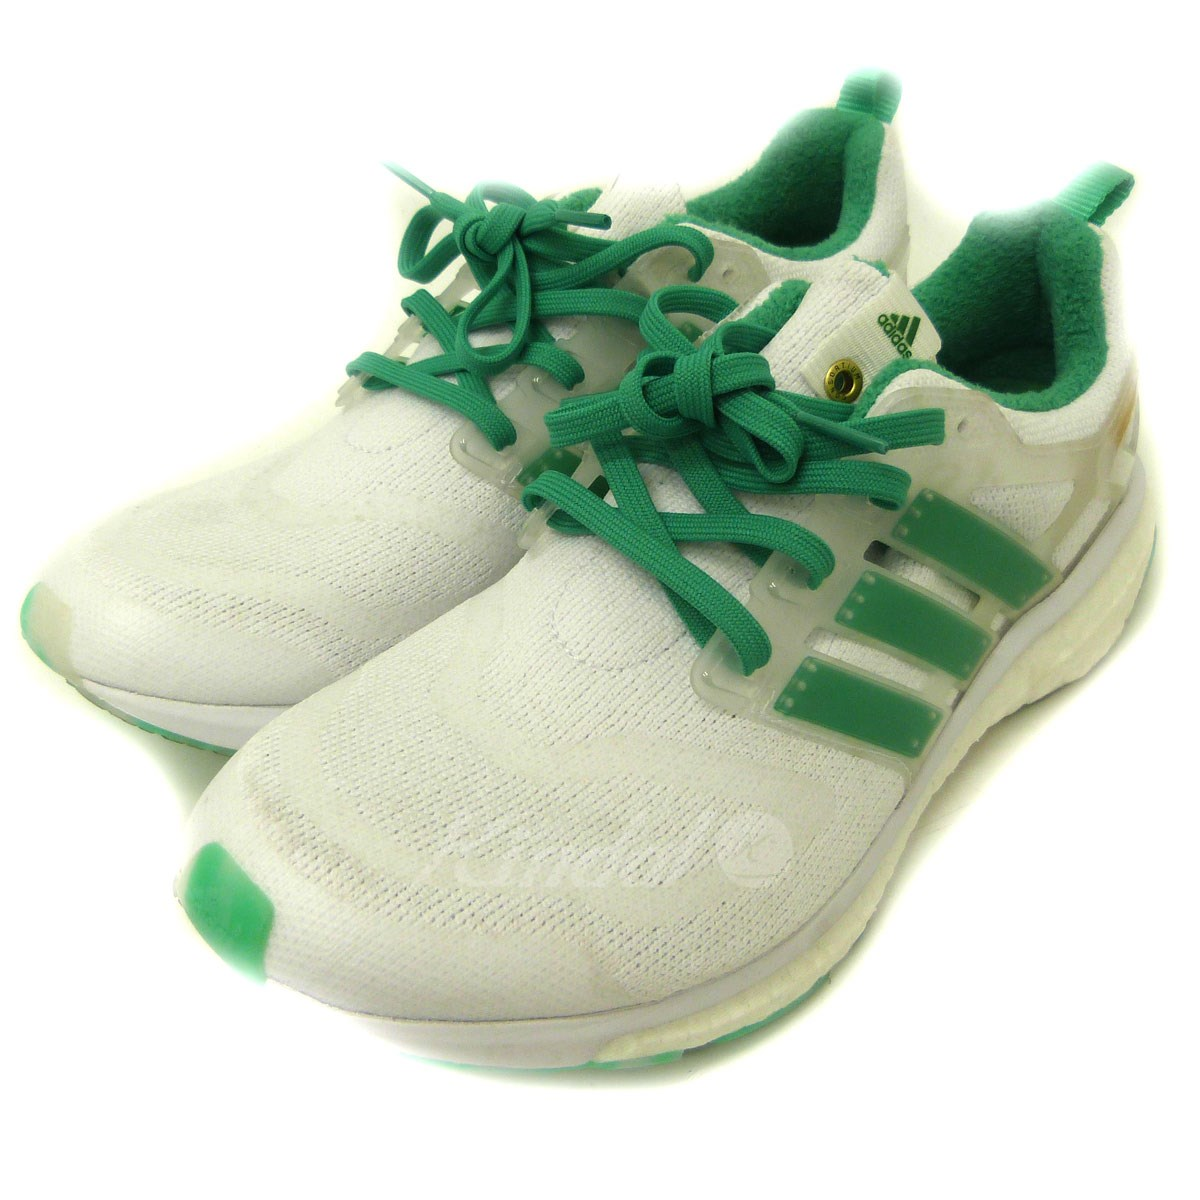 separation shoes 620a4 4c336 adidas Consotium X CONCEPTS